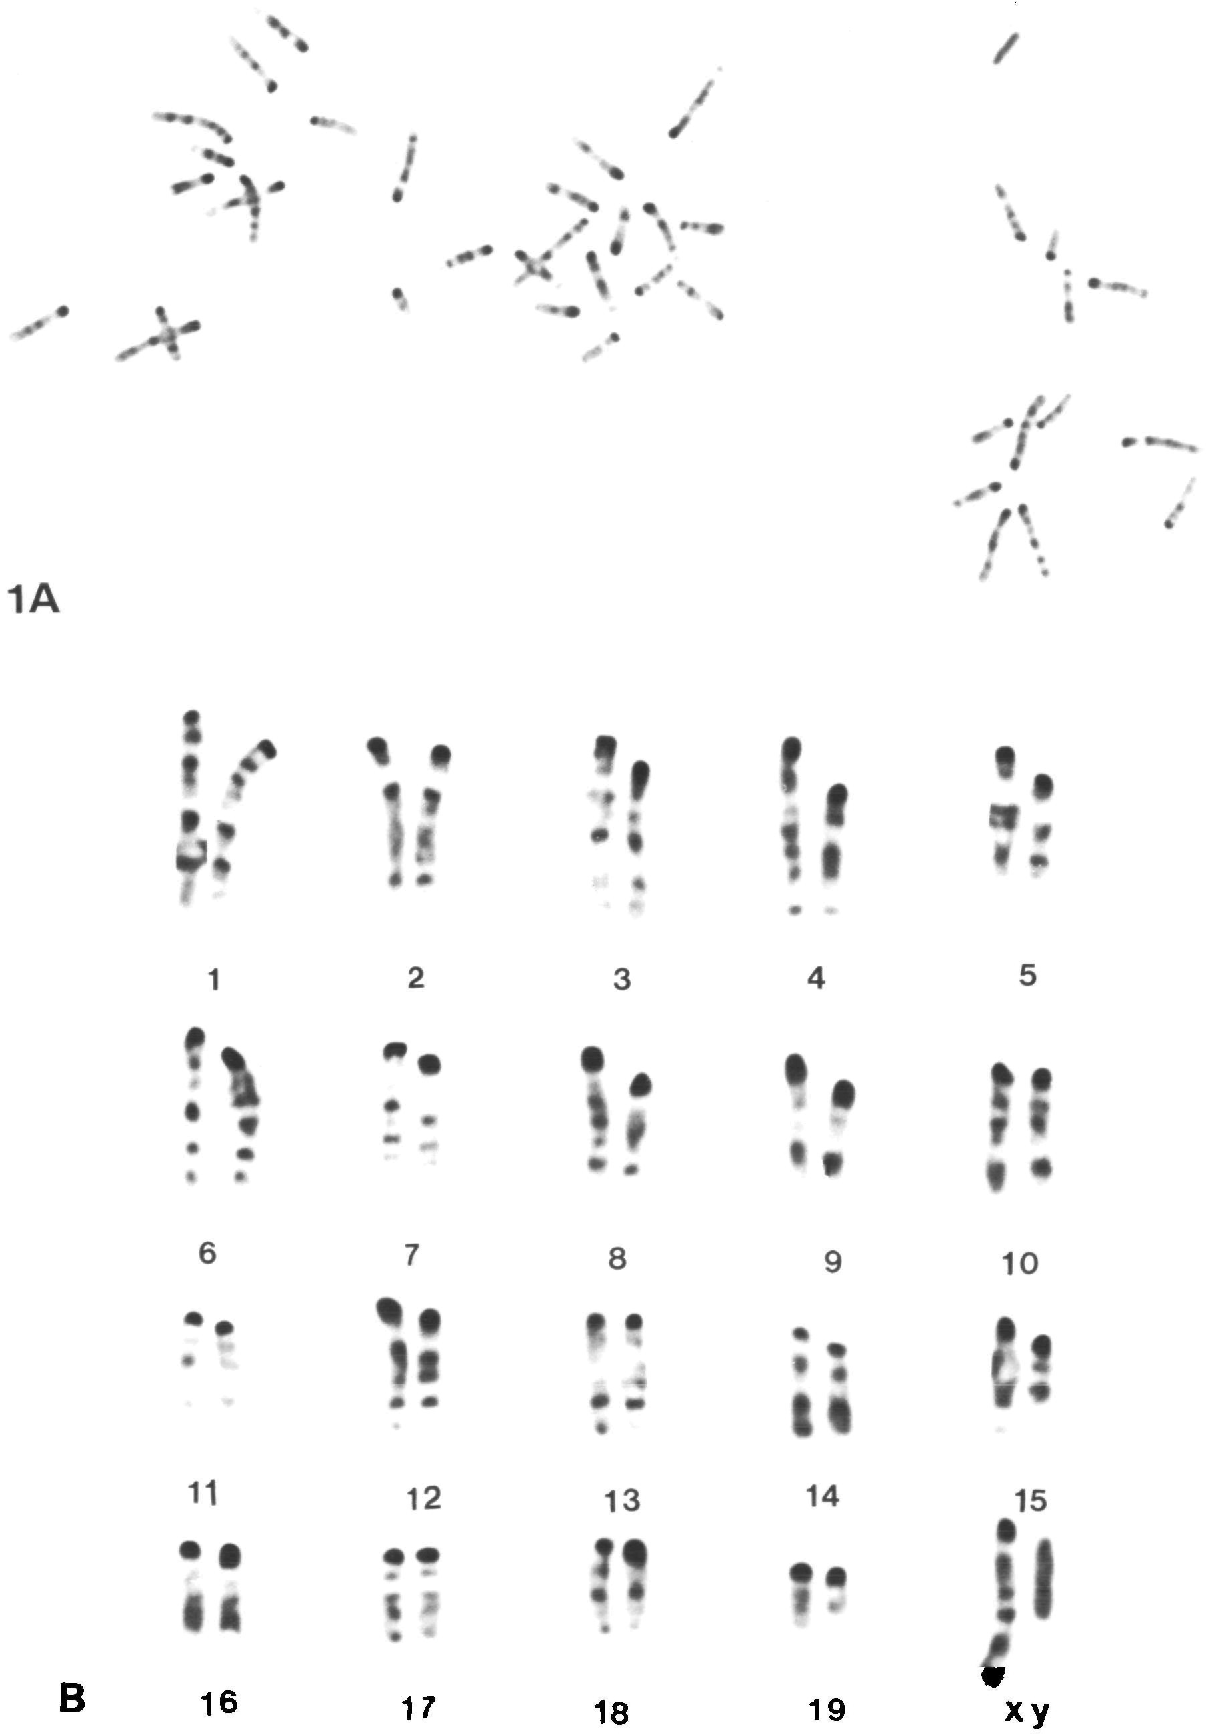 Figs 1A, 2A. Air-dried chromosome spreads from two normal fertilized mouse eggs at the first cleavage metaphase, each displaying 40 chromosomes. Giemsa-banded preparation.